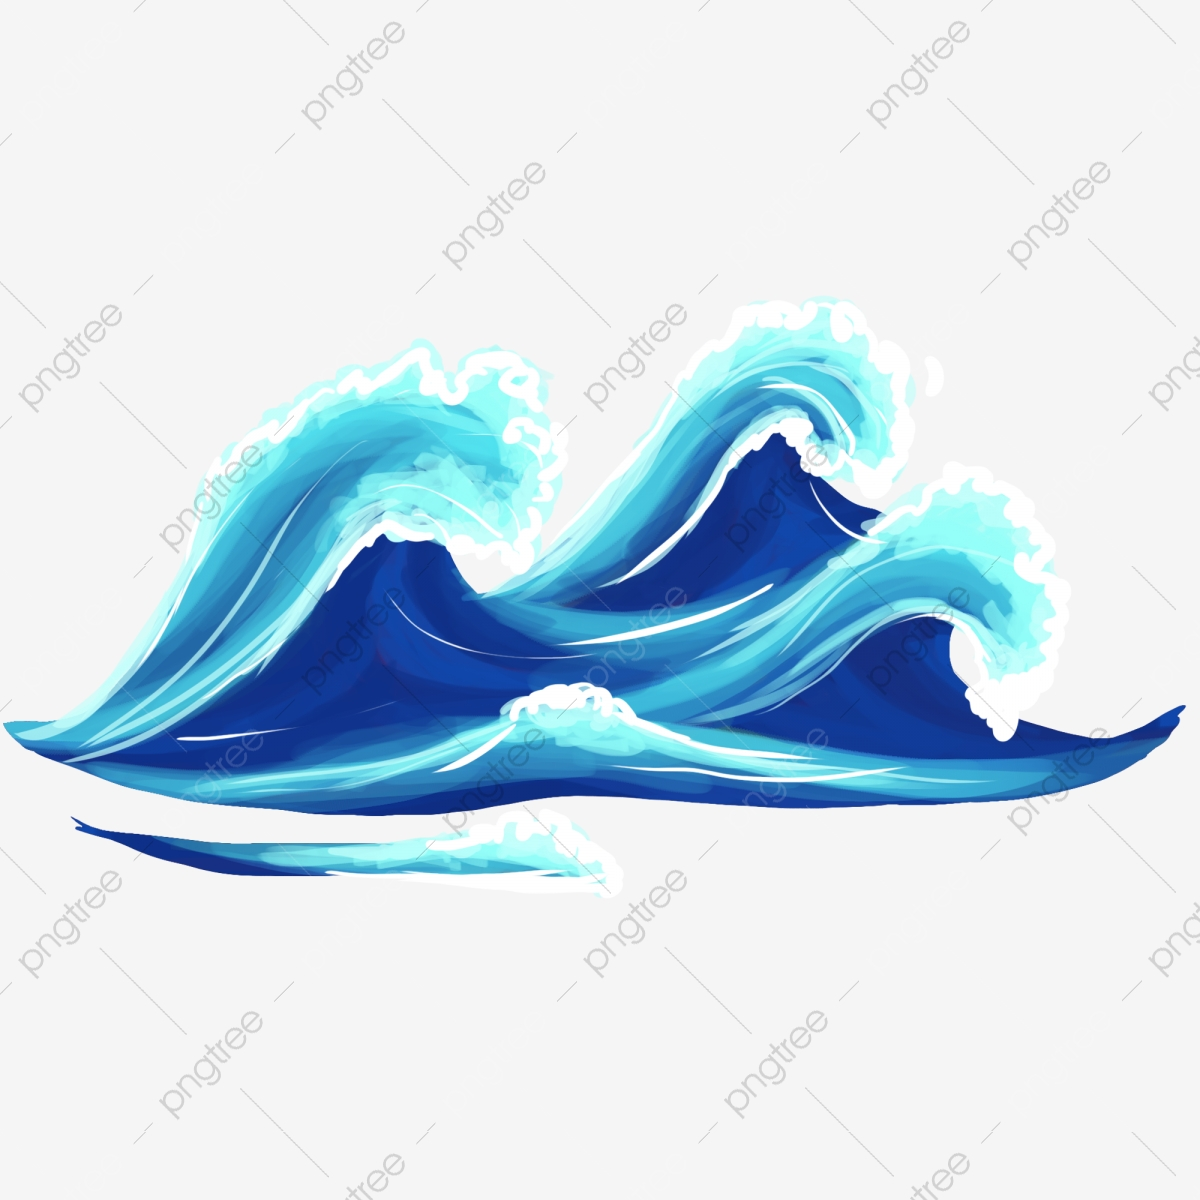 Cartoon decoration spray png. Waves clipart surf wave